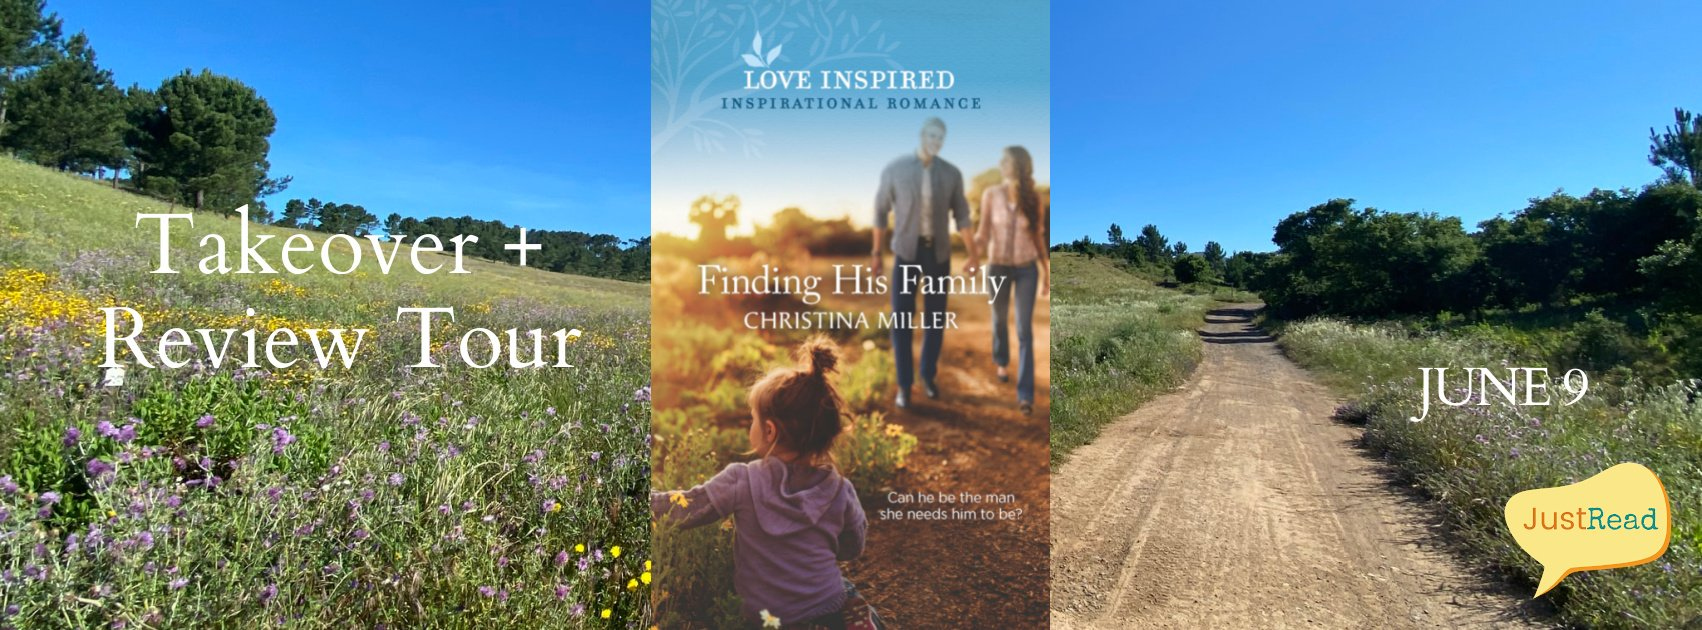 Finding His Family JustRead Takeover Tour